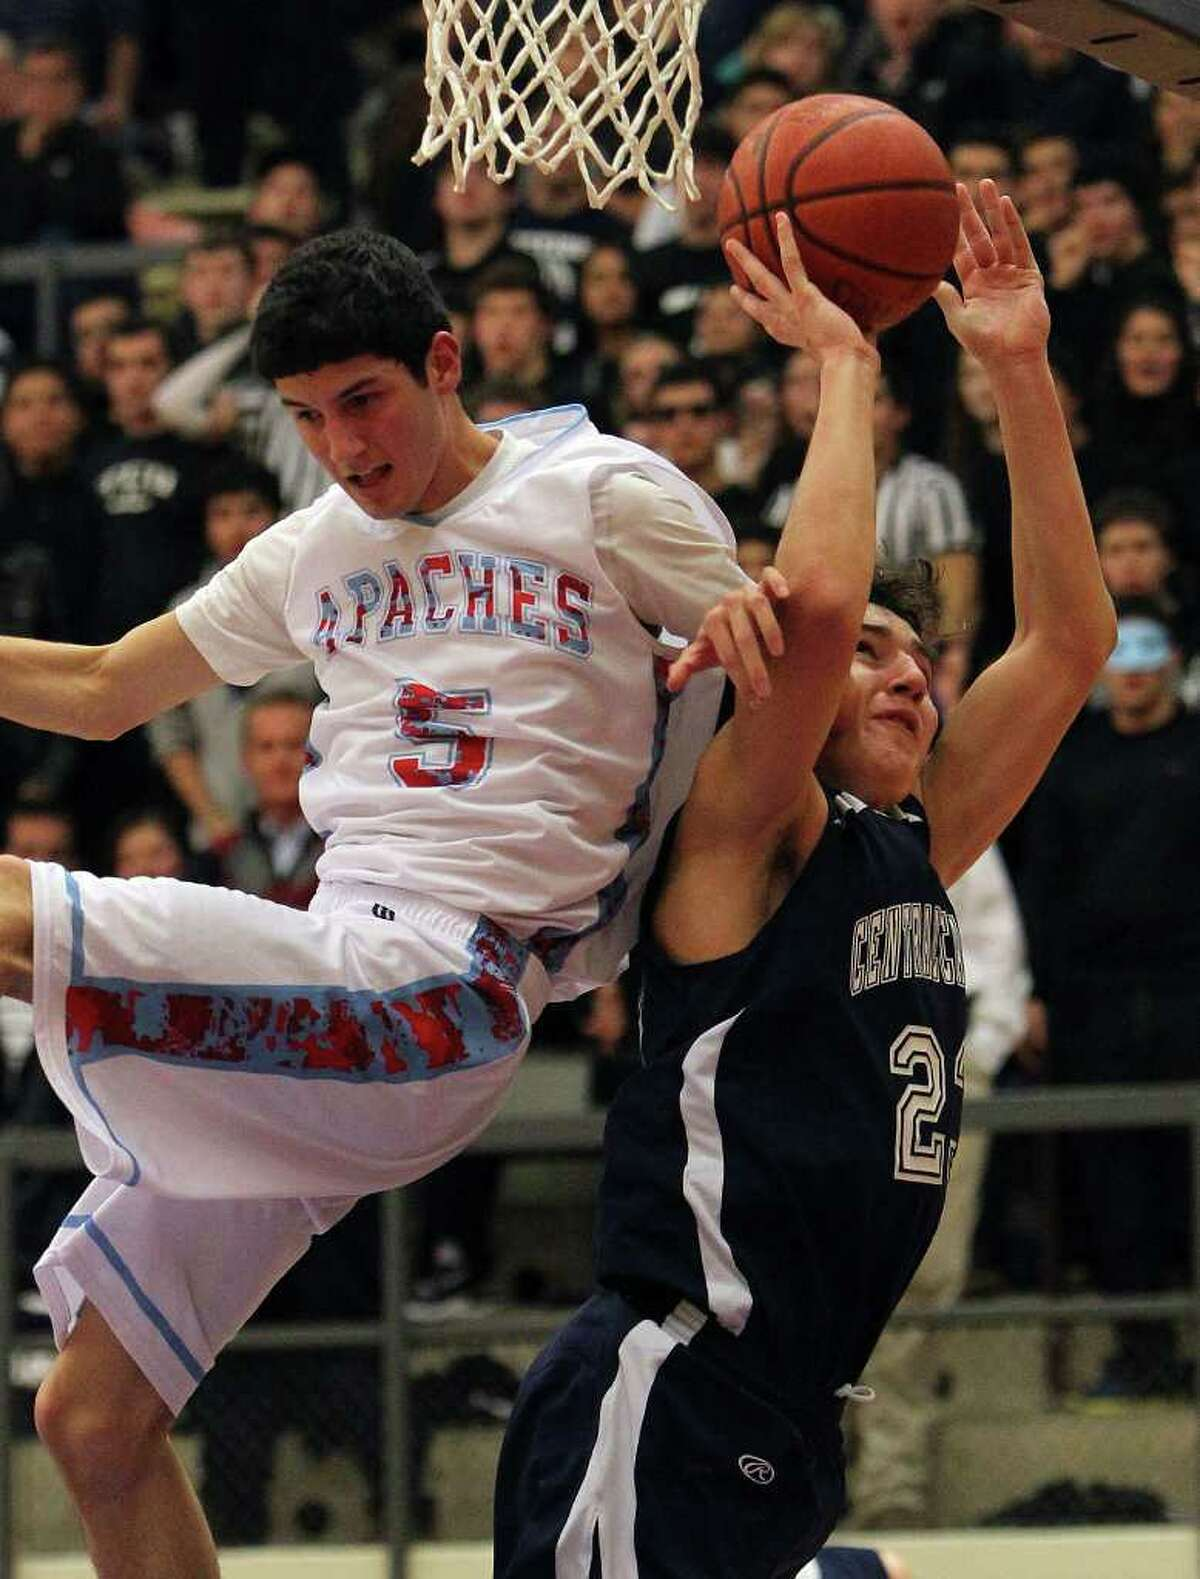 Central Catholic's Philip Betancourt (right) gets fouled as he goes up for shot by Antonian's Eric Garza in boys basketball at Taylor Fieldhouse on Wednesday, Jan. 12, 2011. Central Catholic defeated Antonian 64-54. Kin Man Hui/kmhui@express-news.net